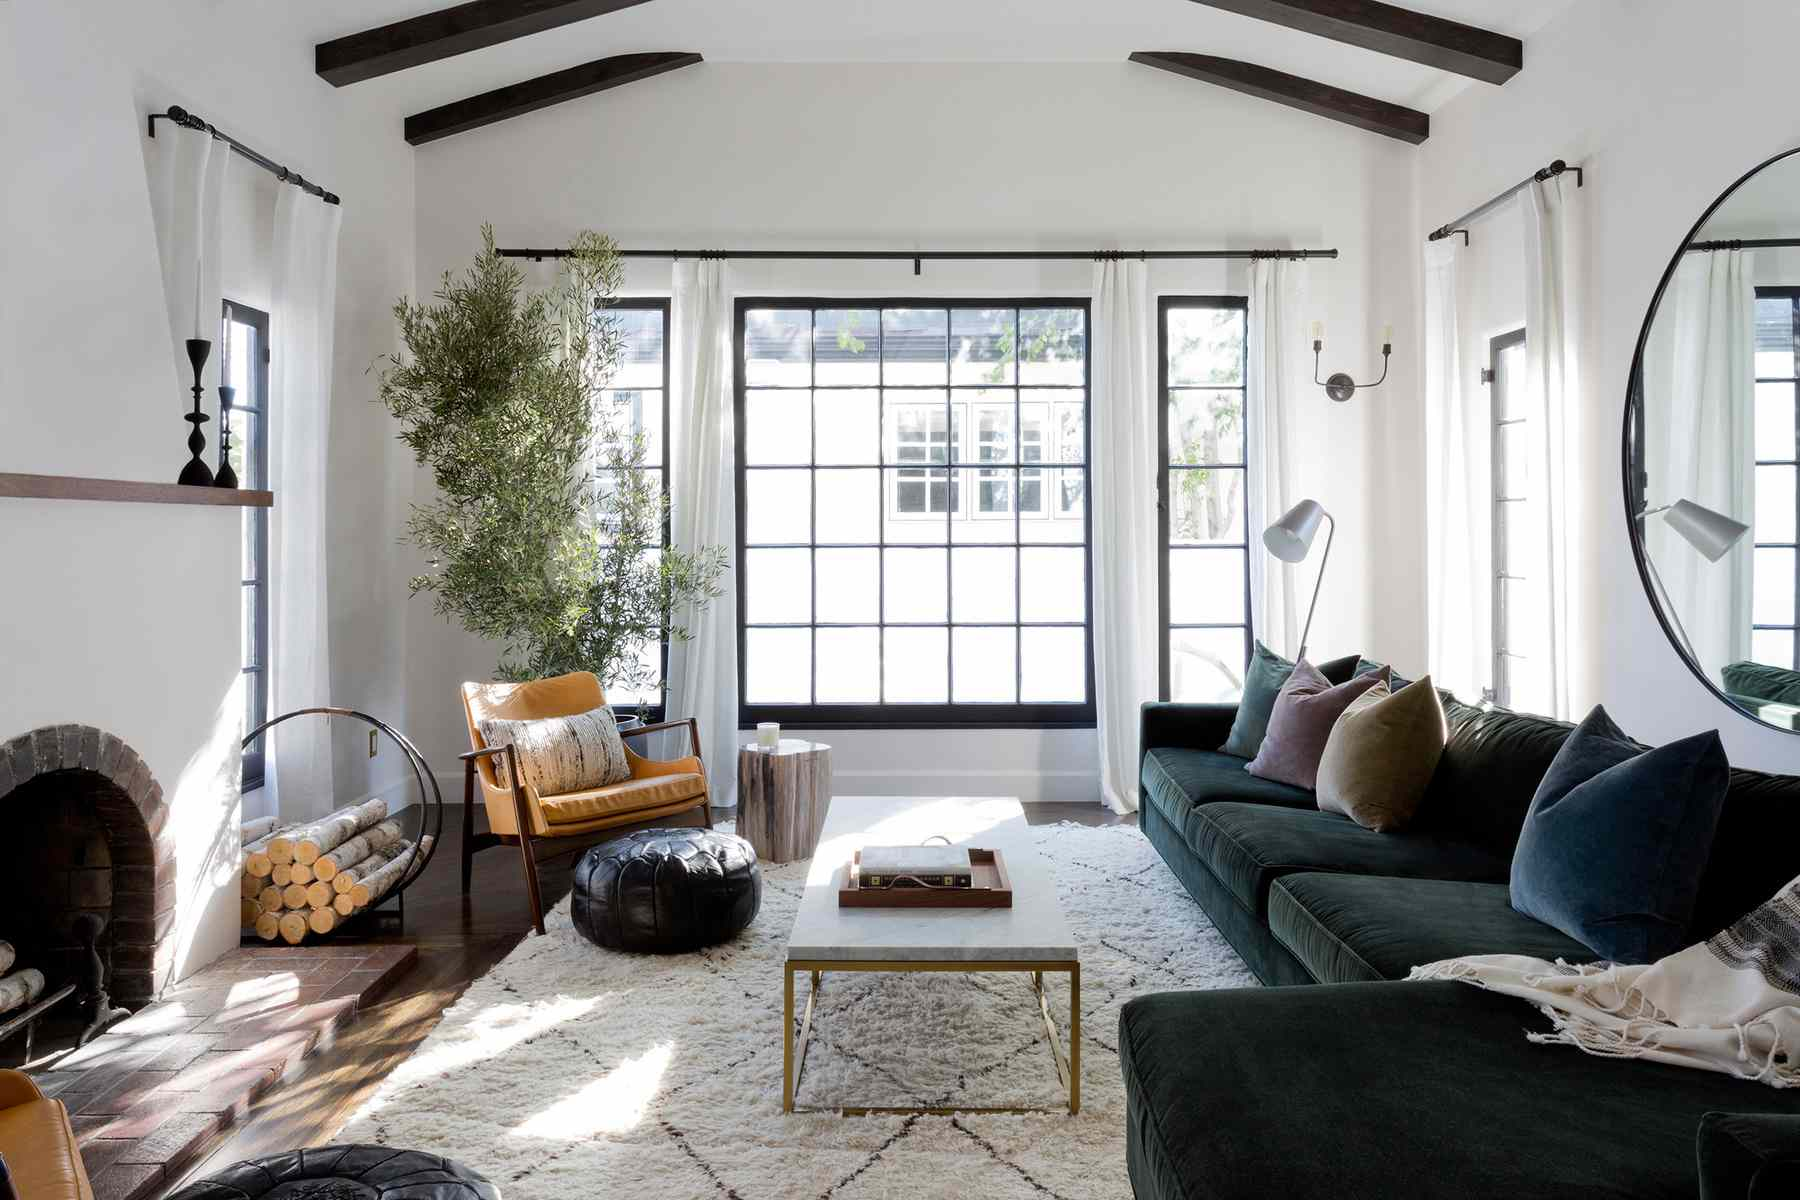 Bright and cozy living room with curtains hung